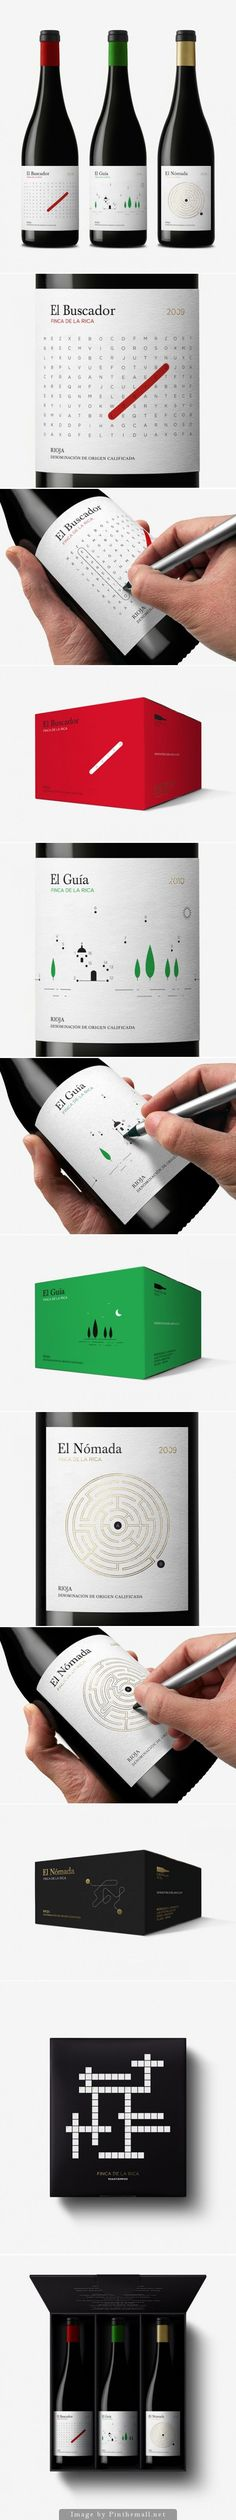 Finca de la Rica #wine #packaging by Dorian